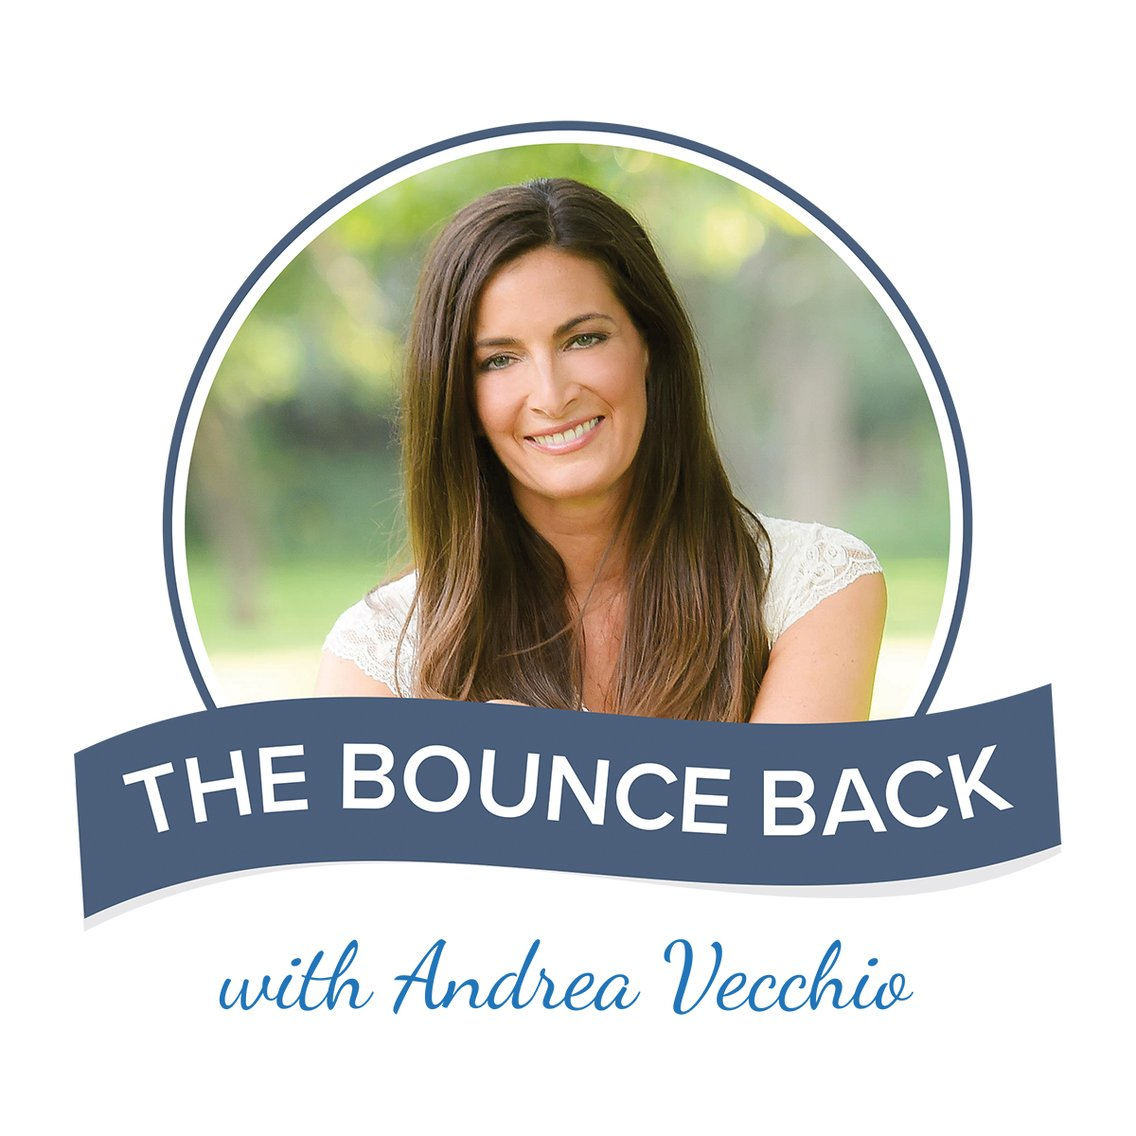 The Bounce Back with Andrea Vecchio - Cover Image